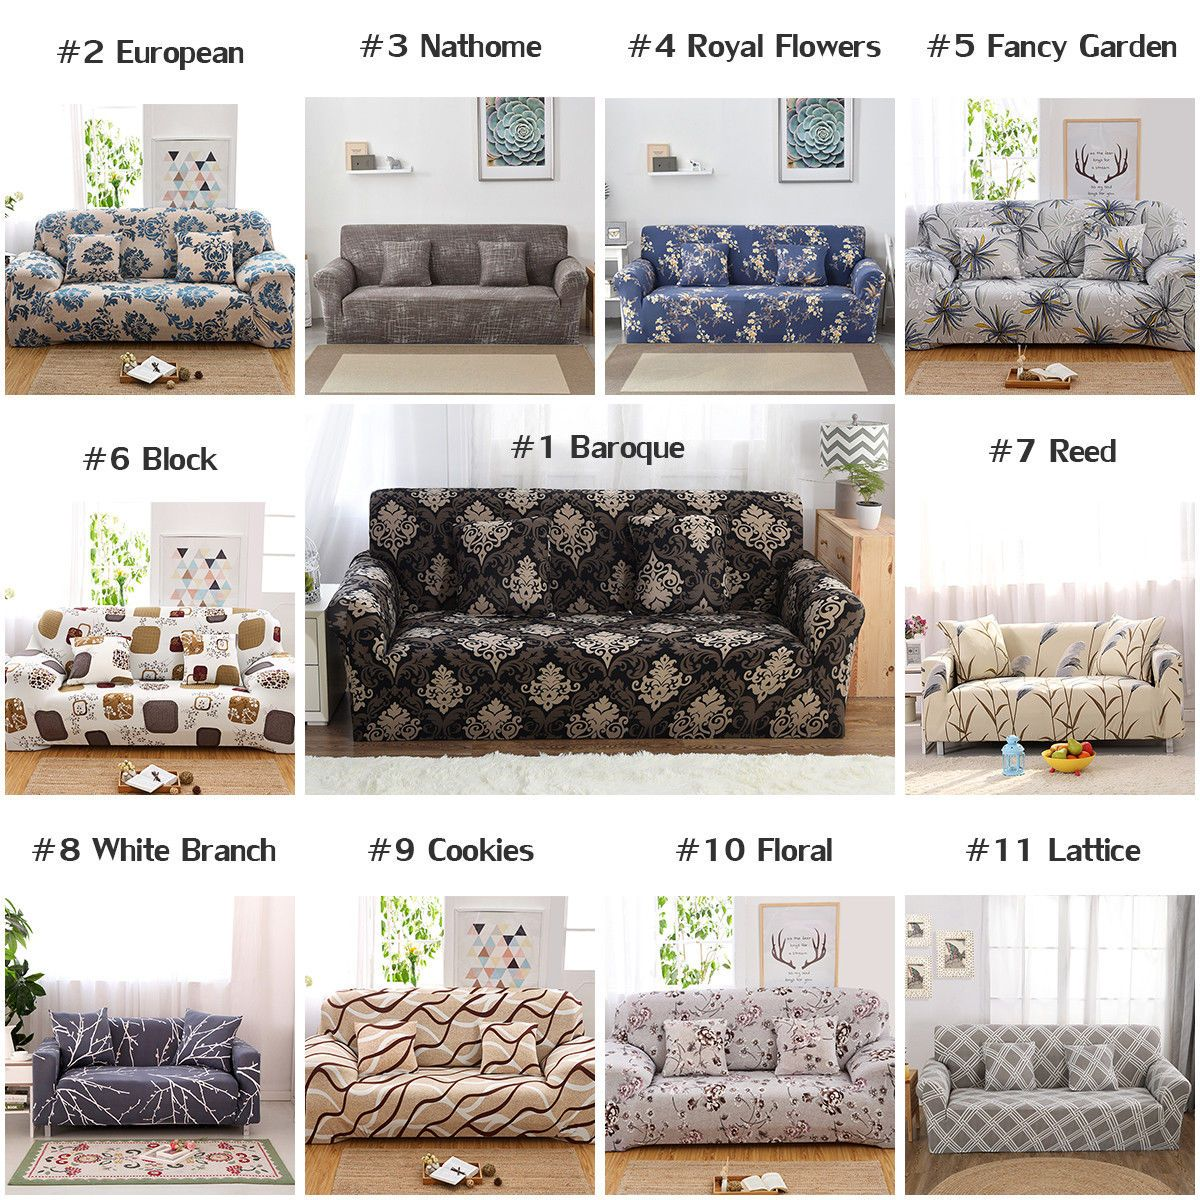 4 99 Aud 1 2 3 4 Seater Couch Sofa Slipcover Protector Cover Chair Loveseat W Faom Sticks Ebay Home Garden Loveseat Slipcovers Sofa Covers Home Decor